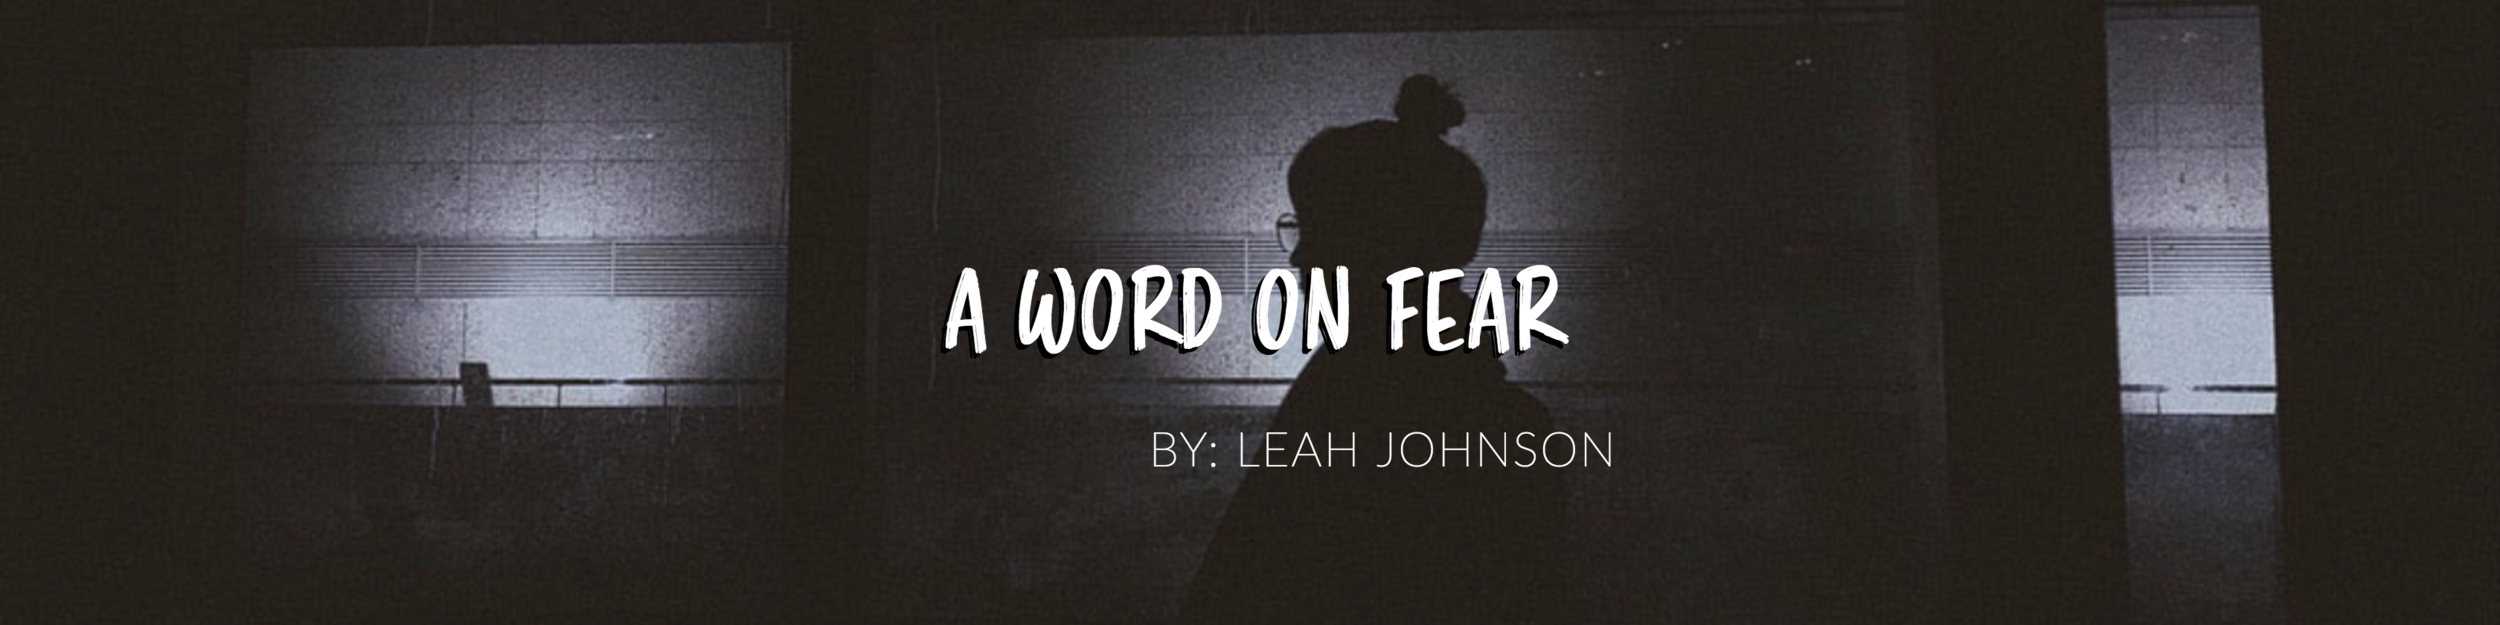 A Word on Fear.png